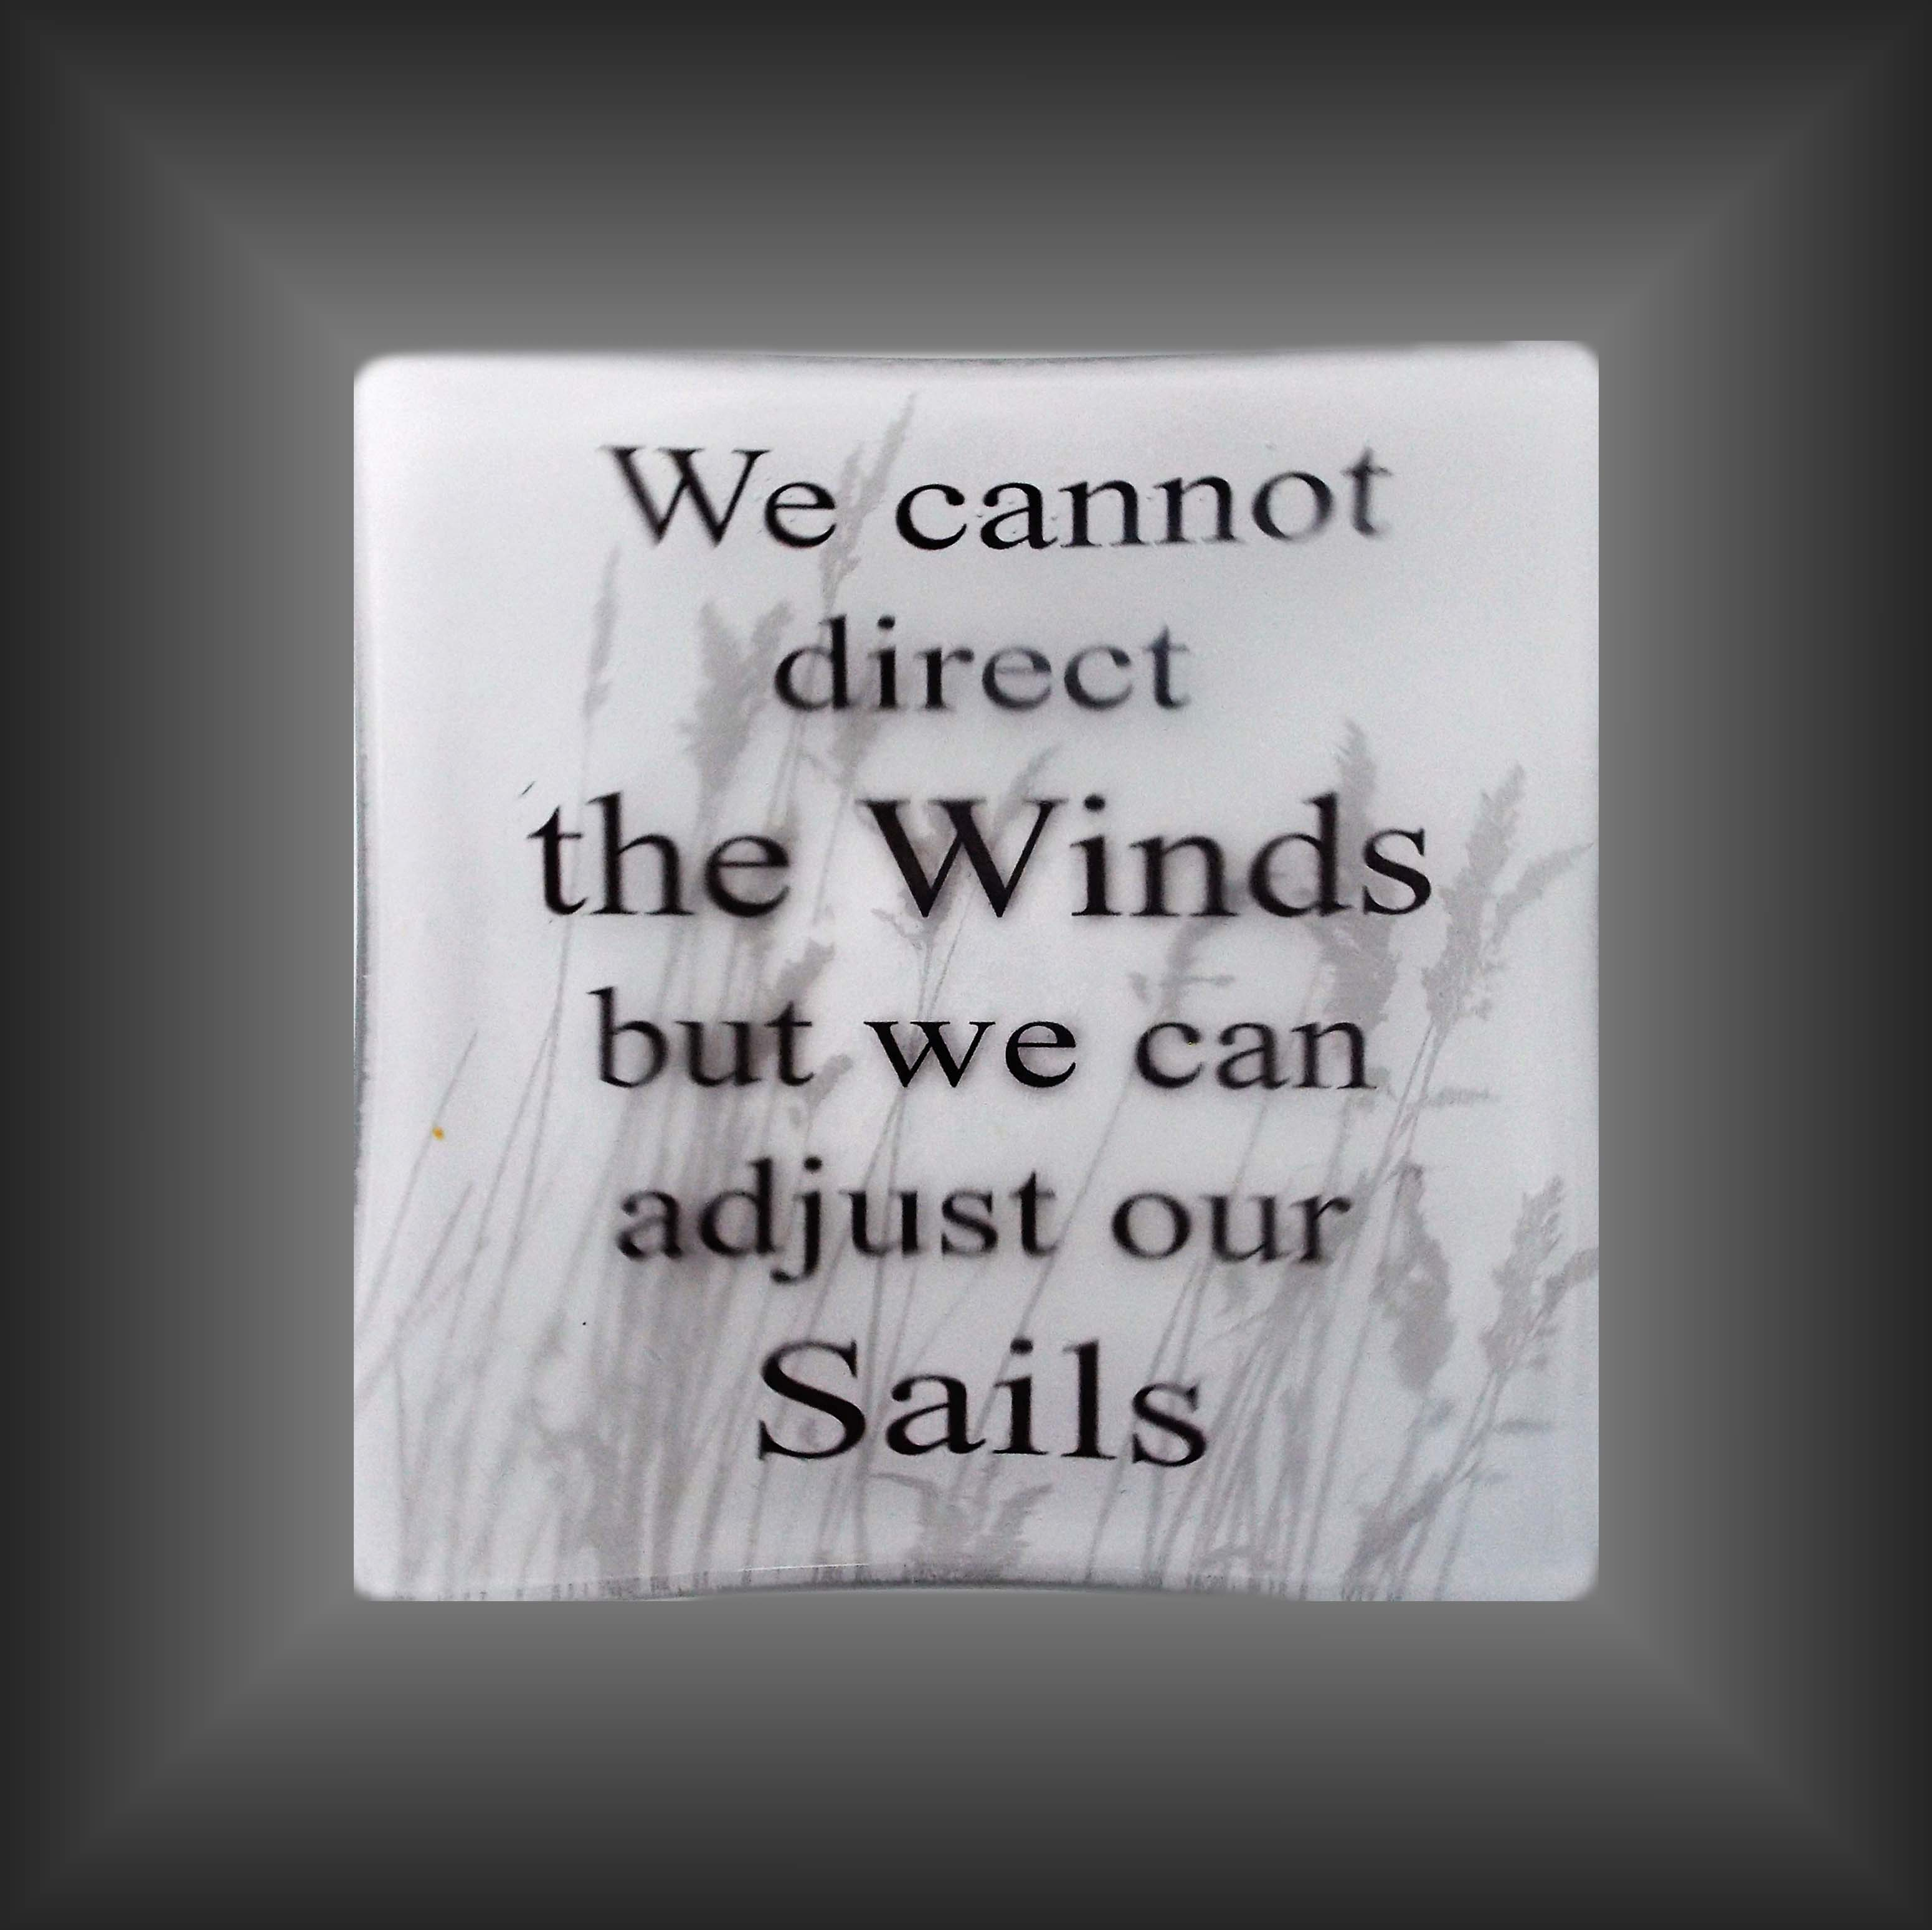 Directing the Winds